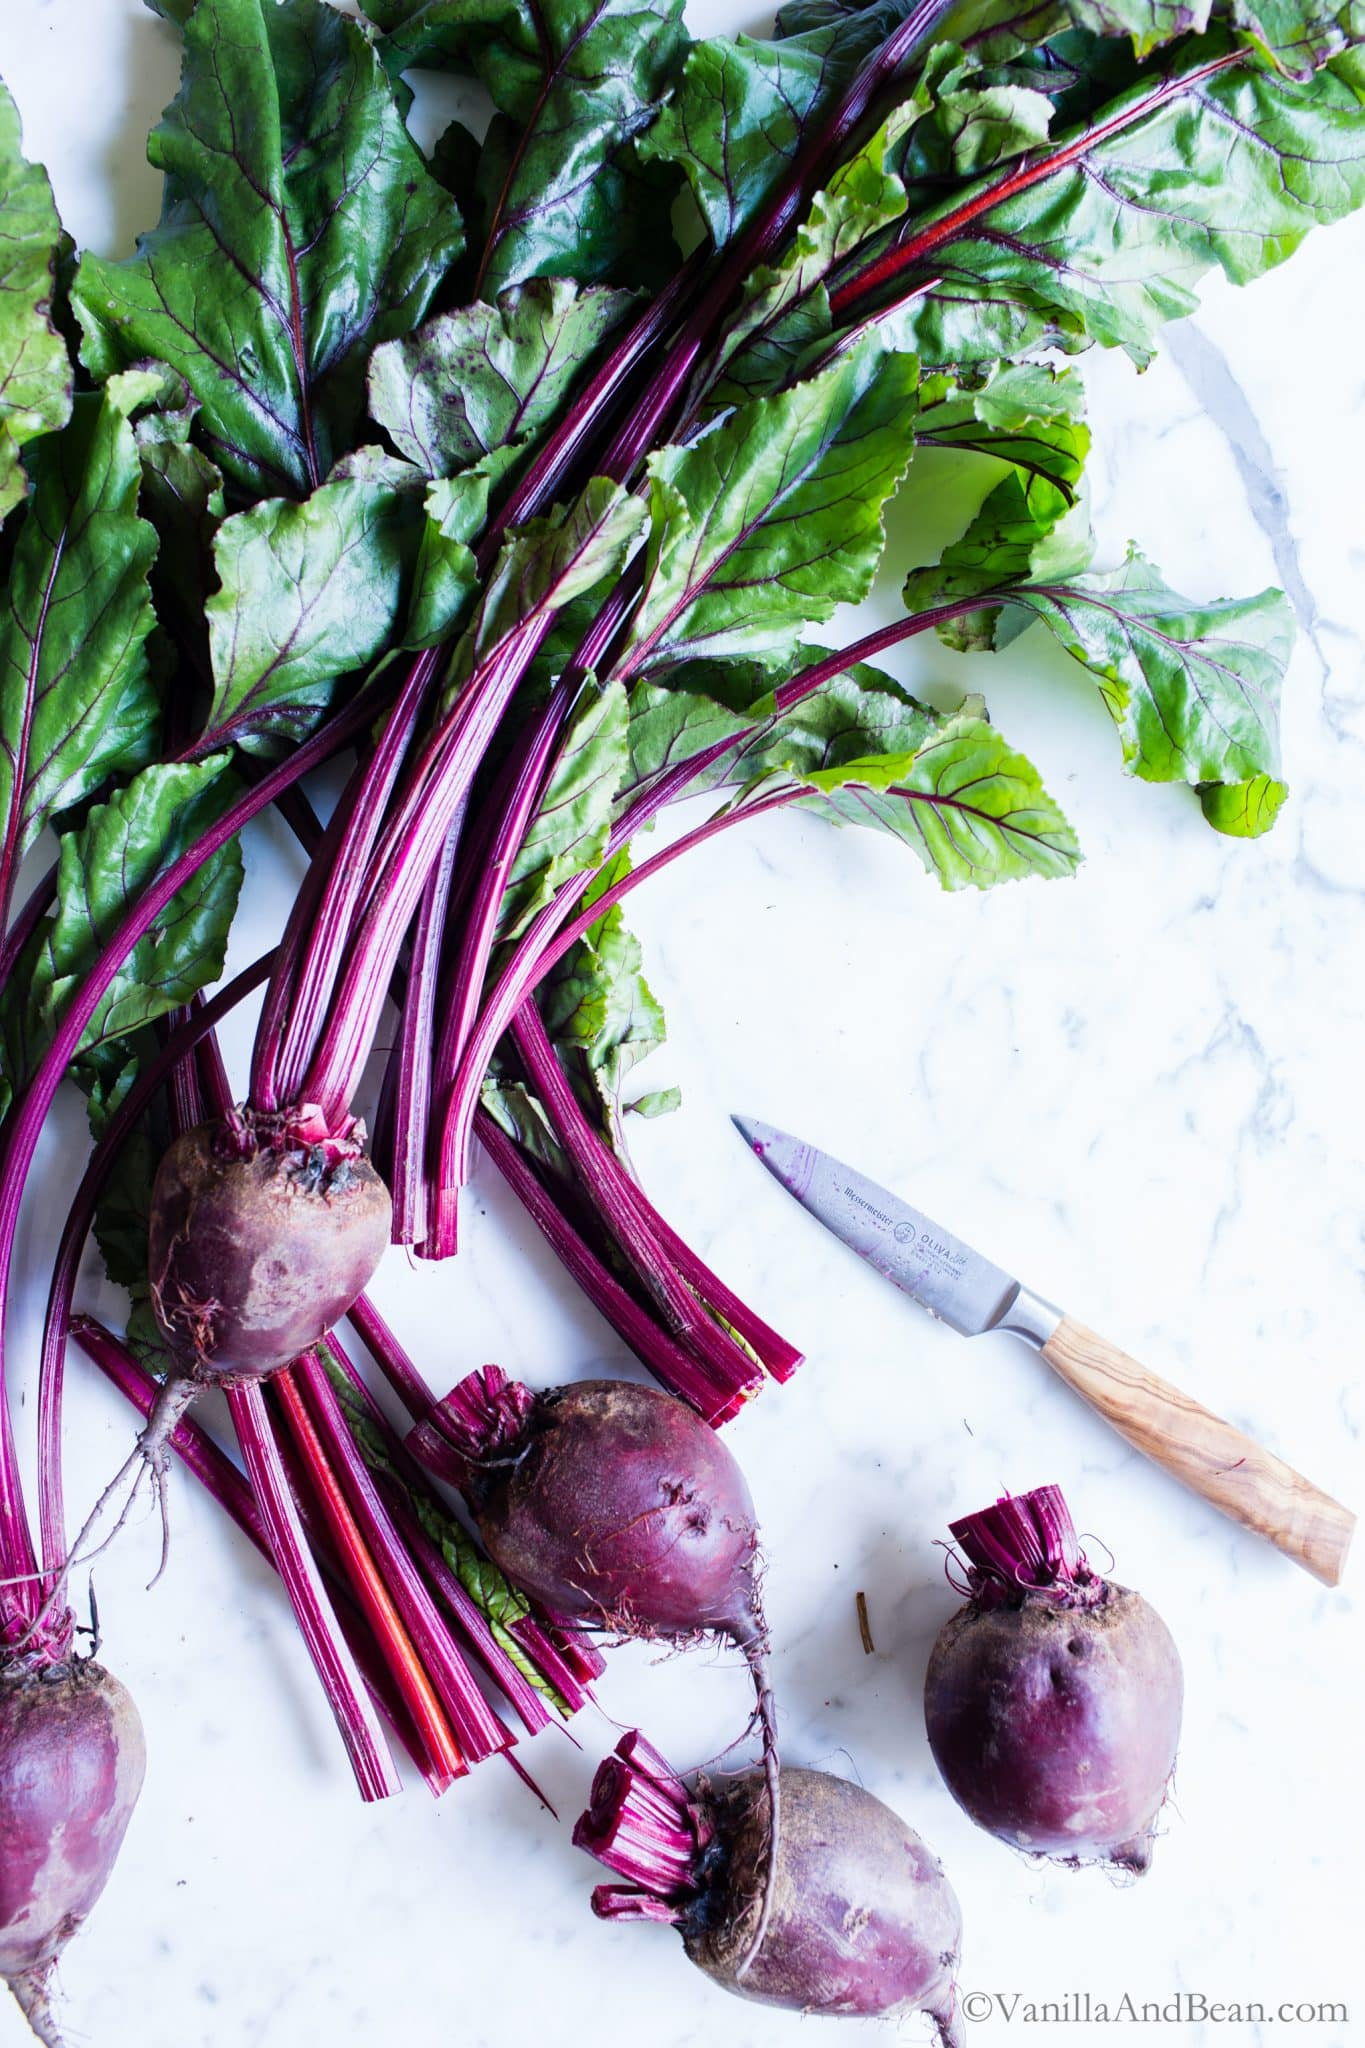 A favorite root vegetable for salads, pickling, smoothies, dips or snacking, I'm sharing  my best tips for How to Roast Beets using a simple, no waste method. A favorite root vegetable for salads, pickling, smoothies, dips or snacking, I'm sharing  my best tips for How to Roast Beets using a simple, no waste method.